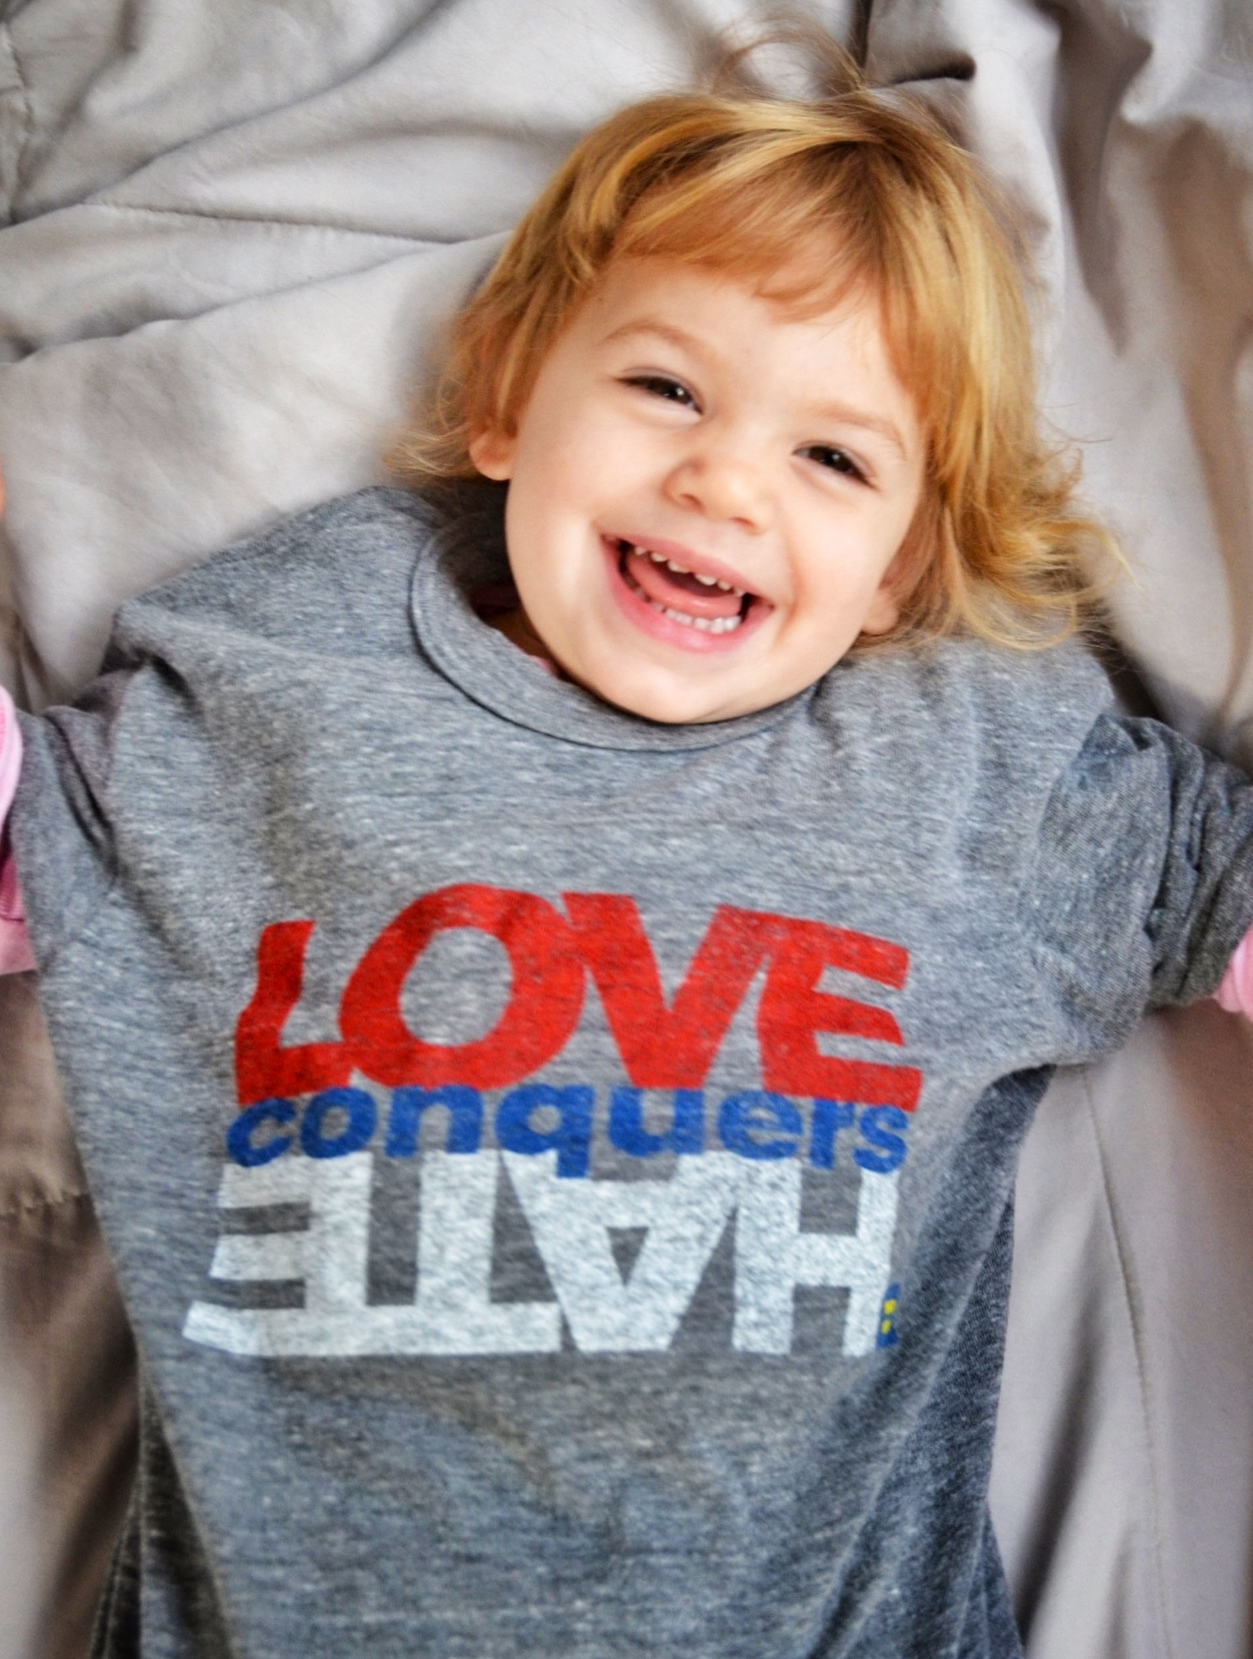 Our beautiful goddaughter teaching us thatLOVE conquers HATE!